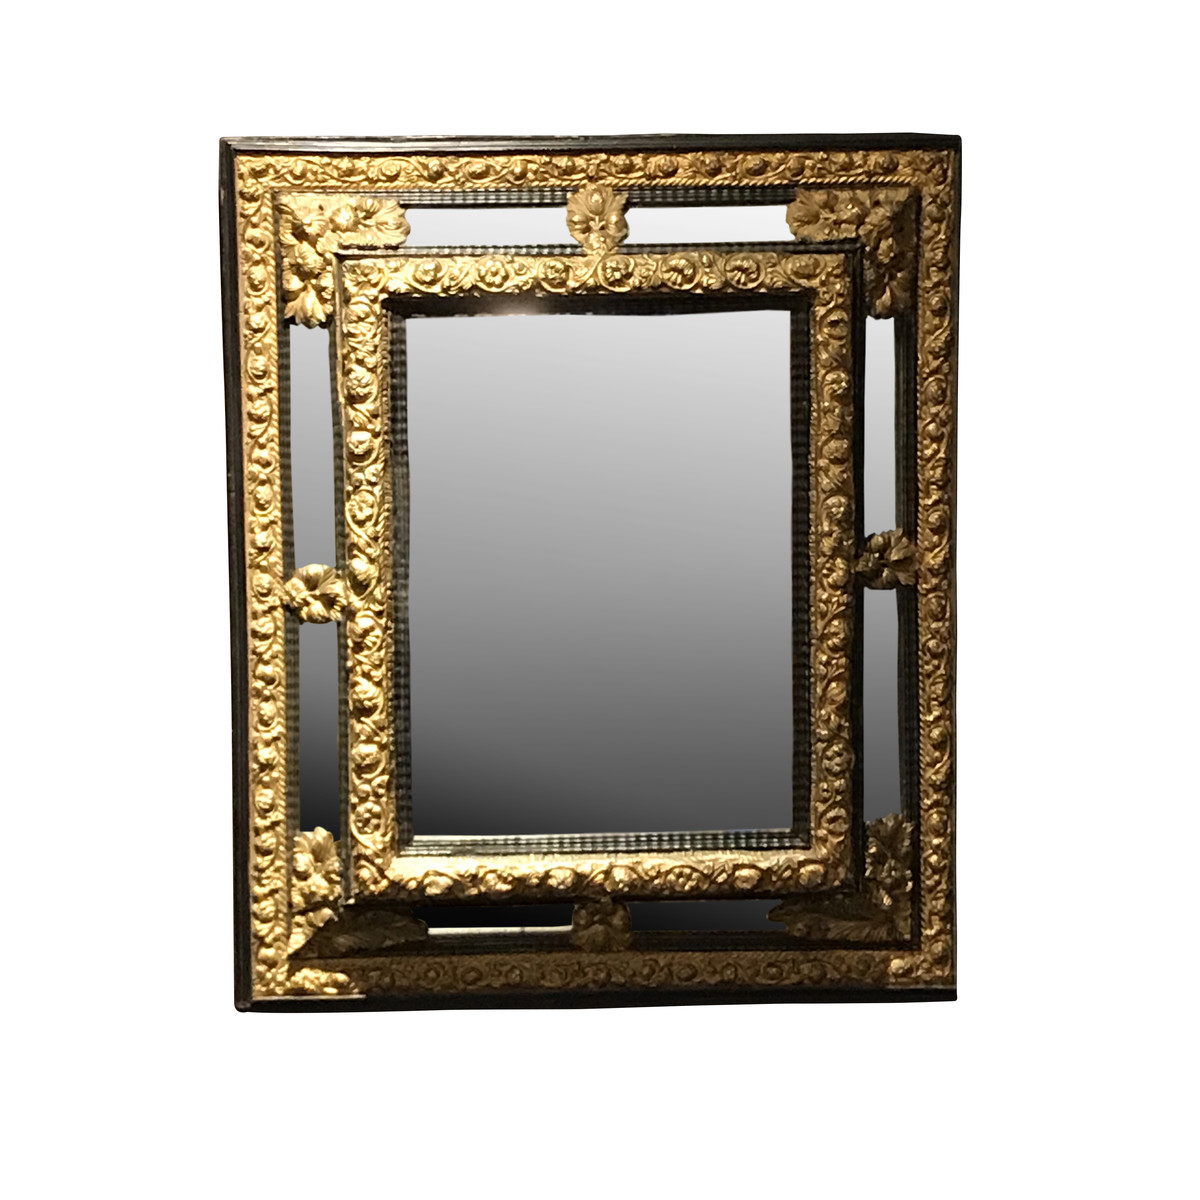 Balsamo Antiques 19thc French Gold Gilt Metal And Ebony